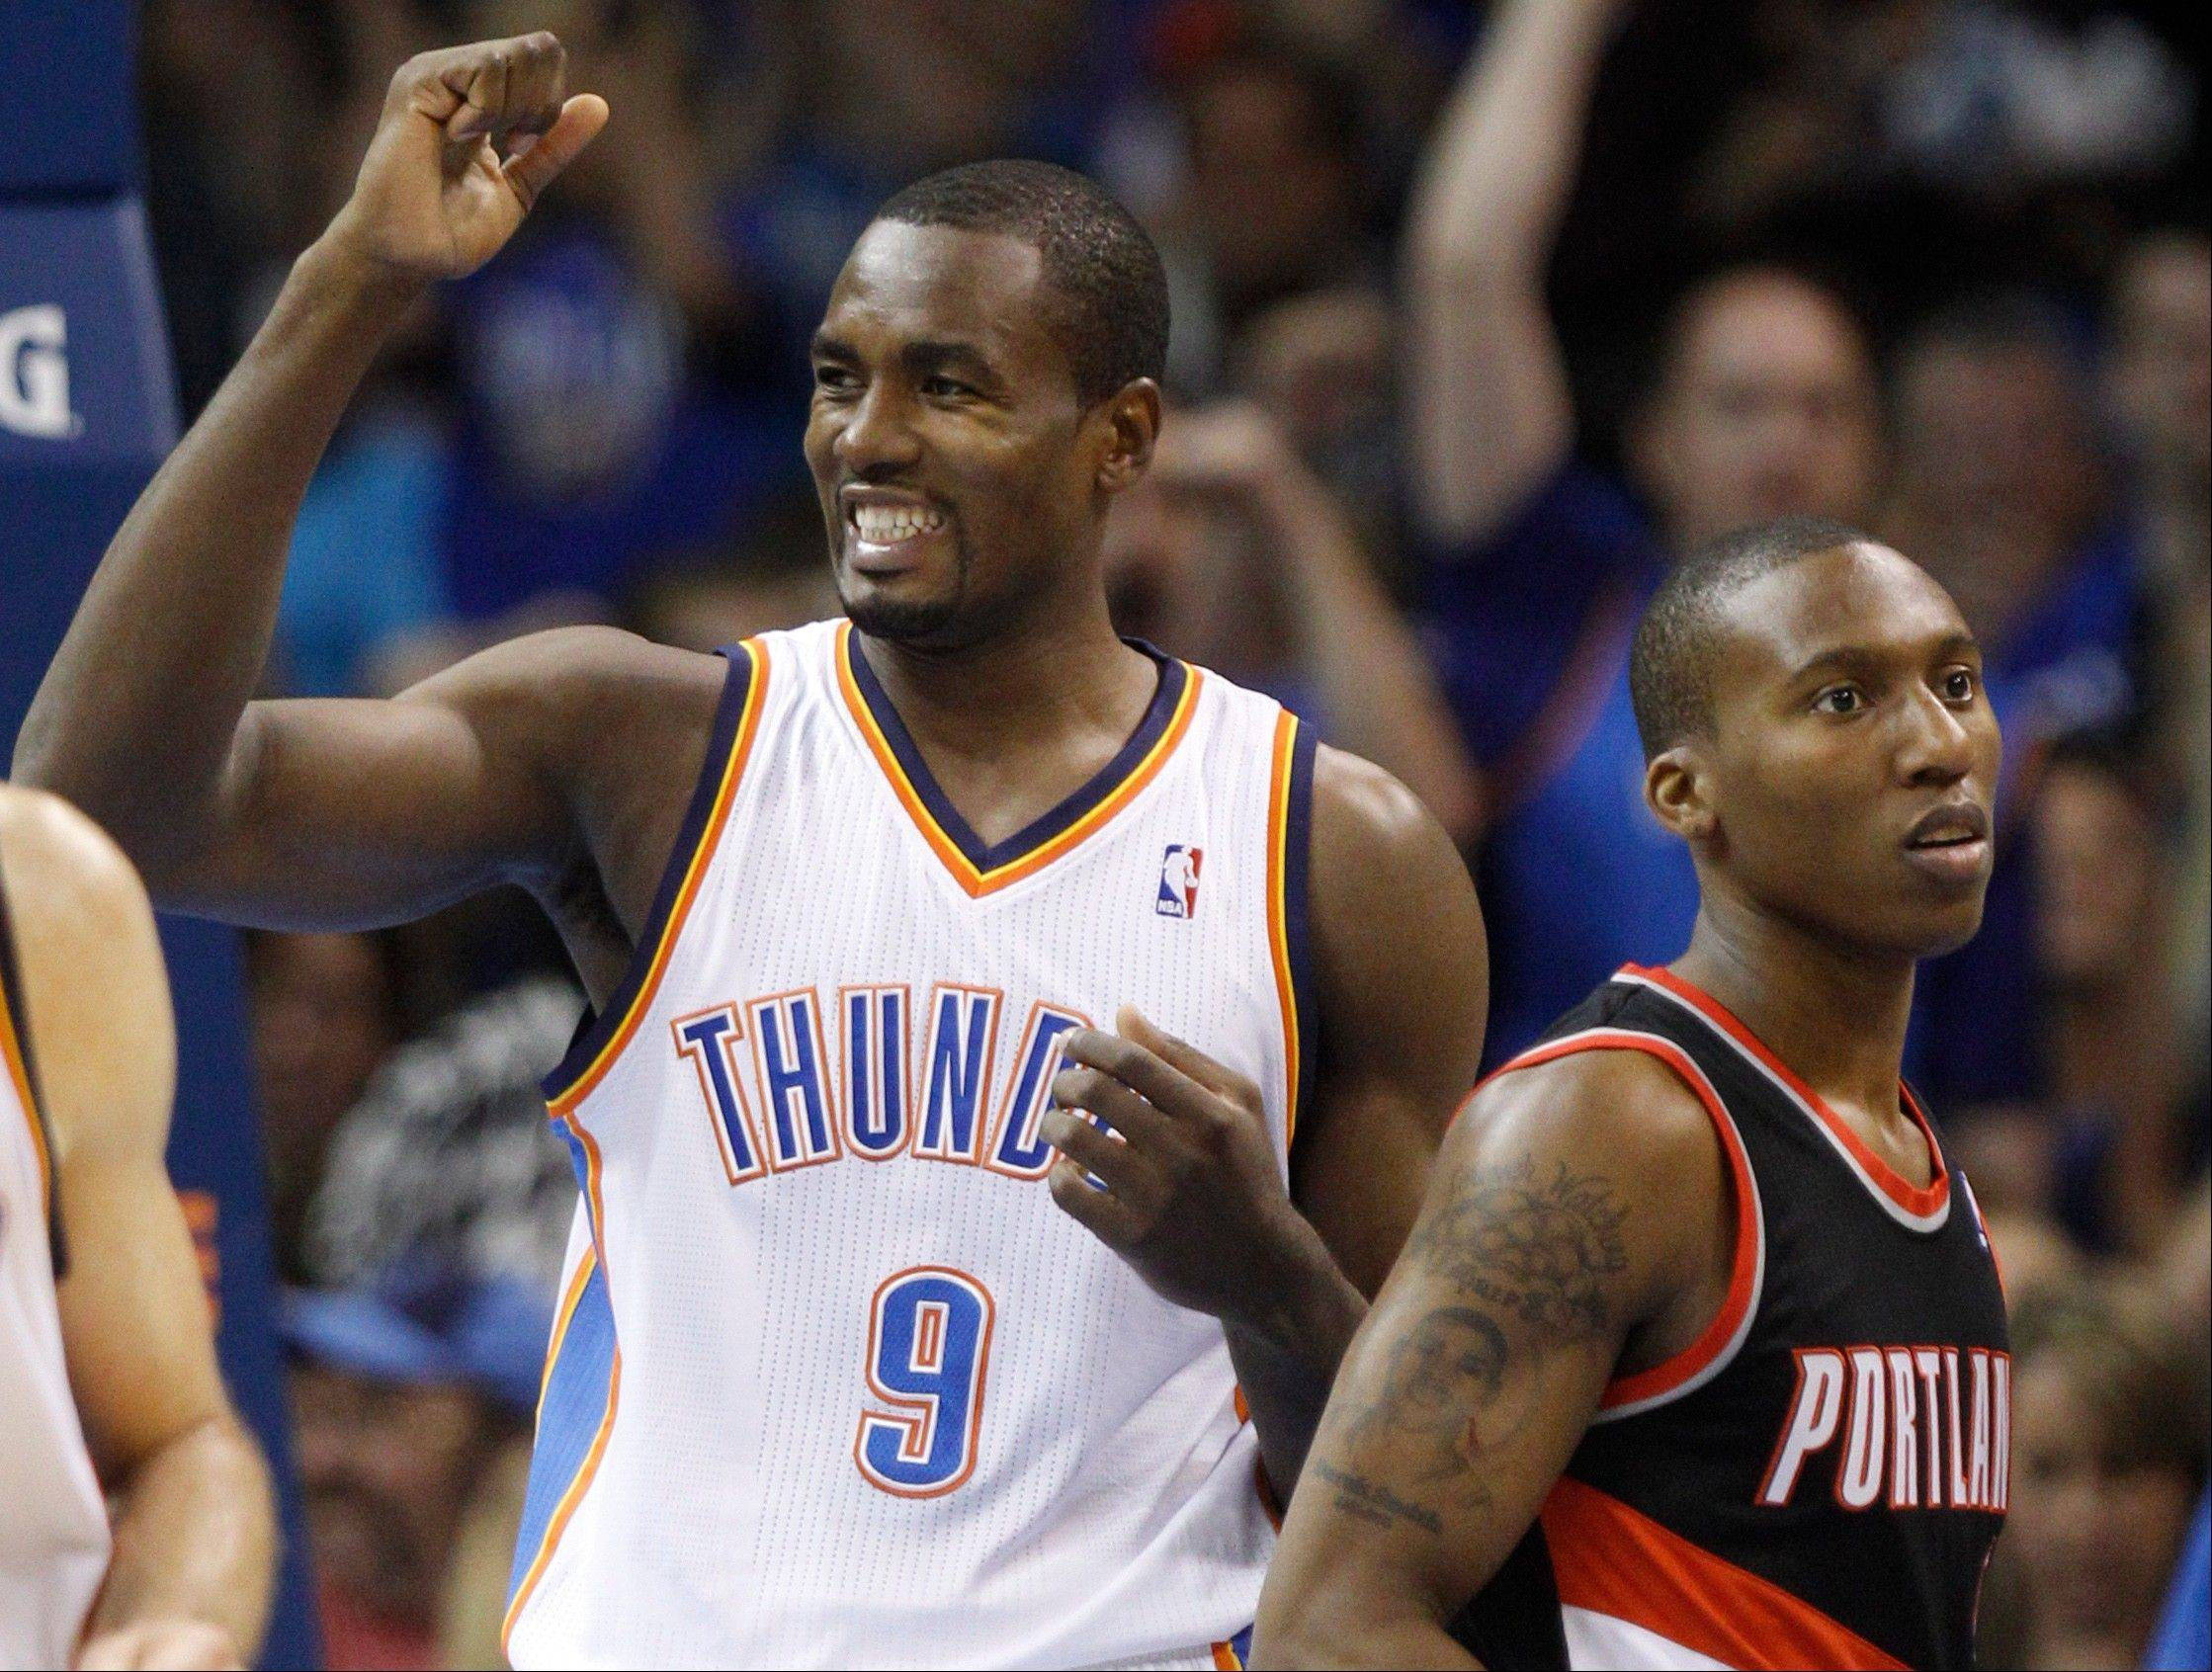 Oklahoma City Thunder forward Serge Ibaka celebrates Friday after a basket by a teammate in the second quarter against the Portland Trail Blazers in Oklahoma City.